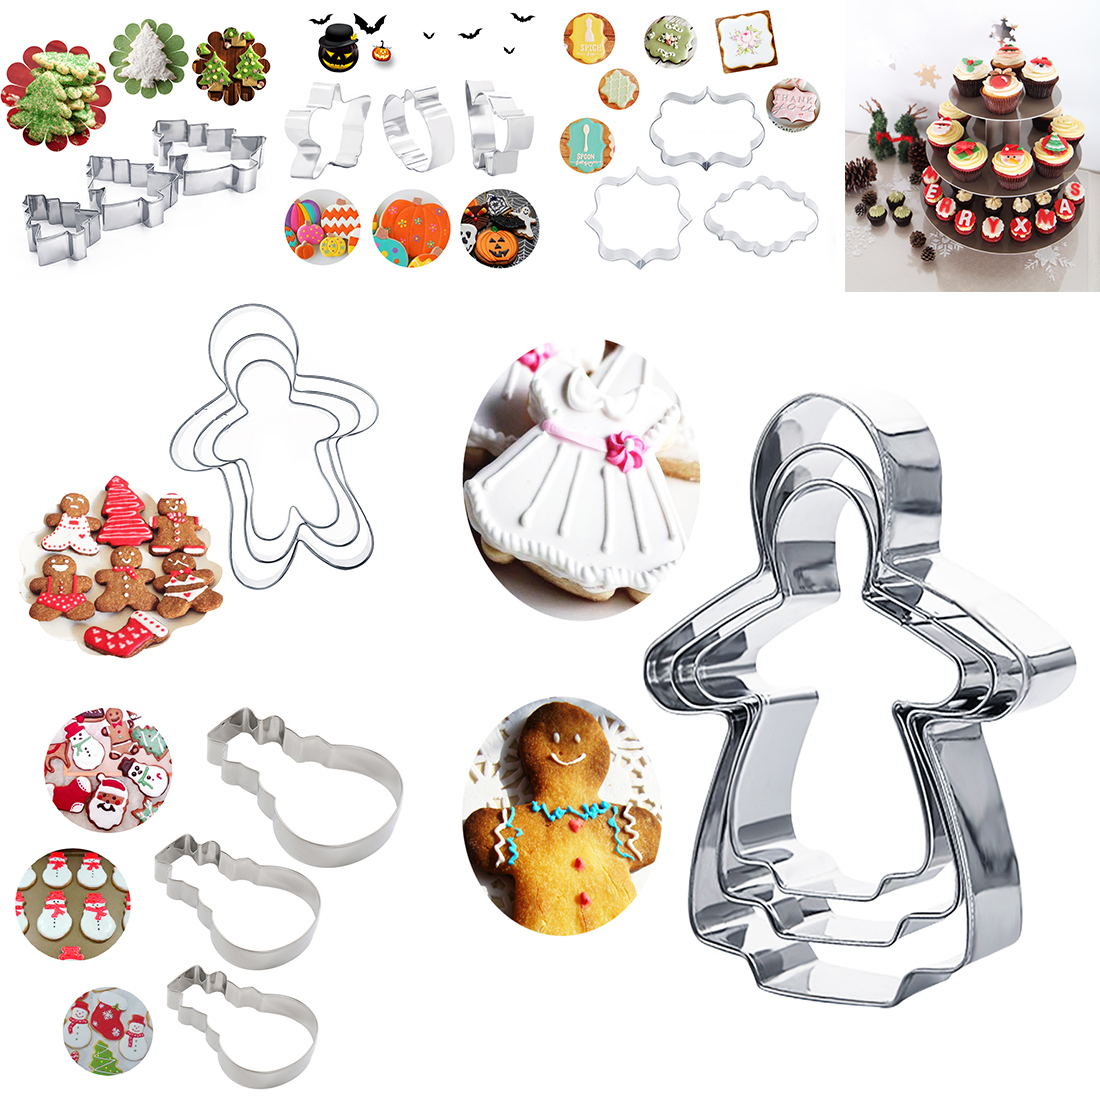 Lovely 3pcs/set 3d Fondant Cookie Cutters Stainless Steel Gingerbread Snowman Easter Series Shape Mold Cake Stencils Bakeware Kitchen,dining & Bar